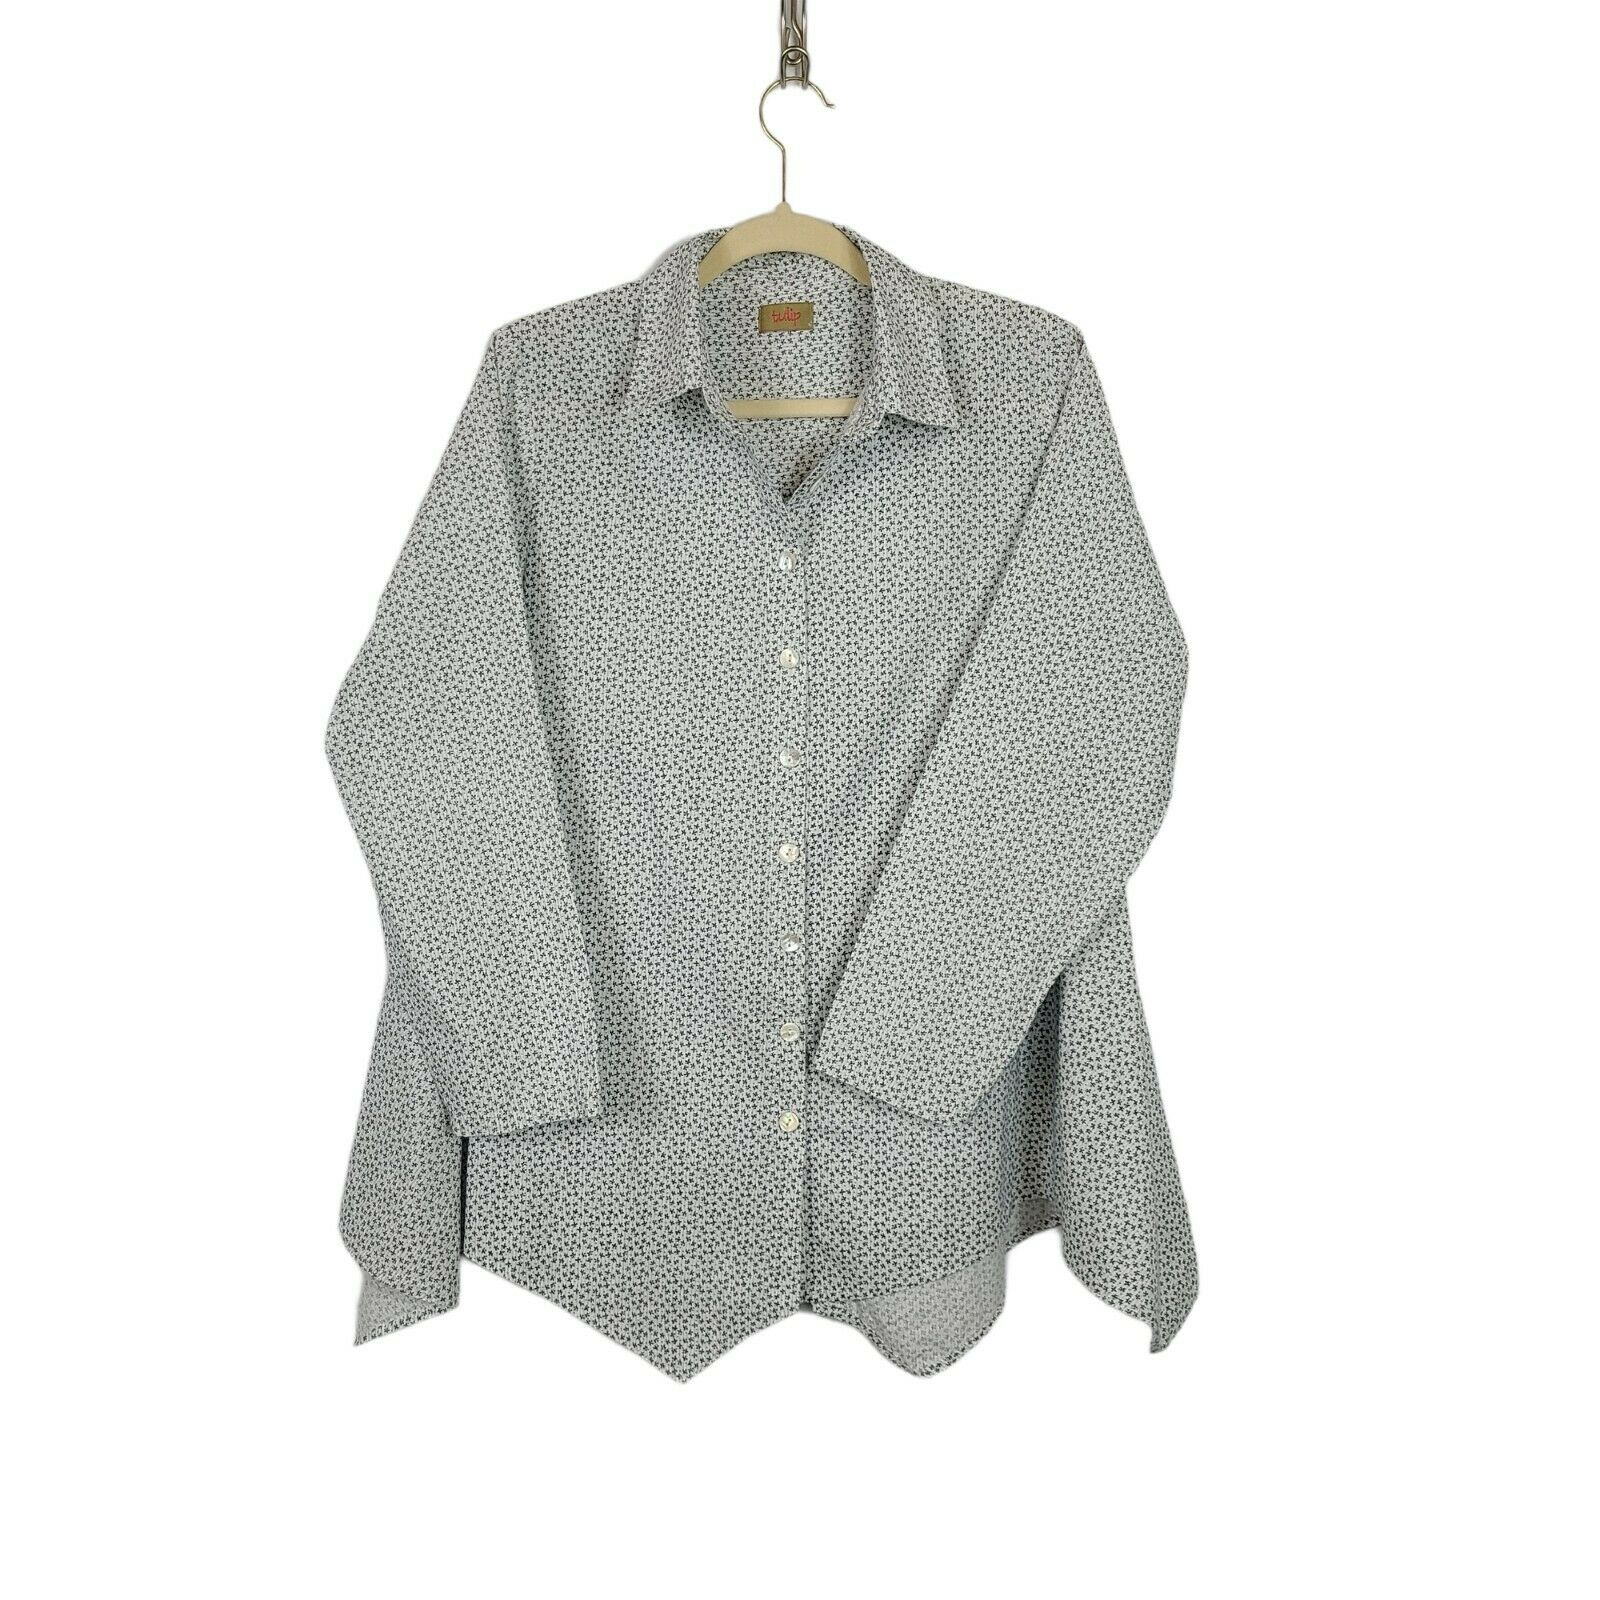 Tulip Women's Button Down Blouse Size Small Overs… - image 1